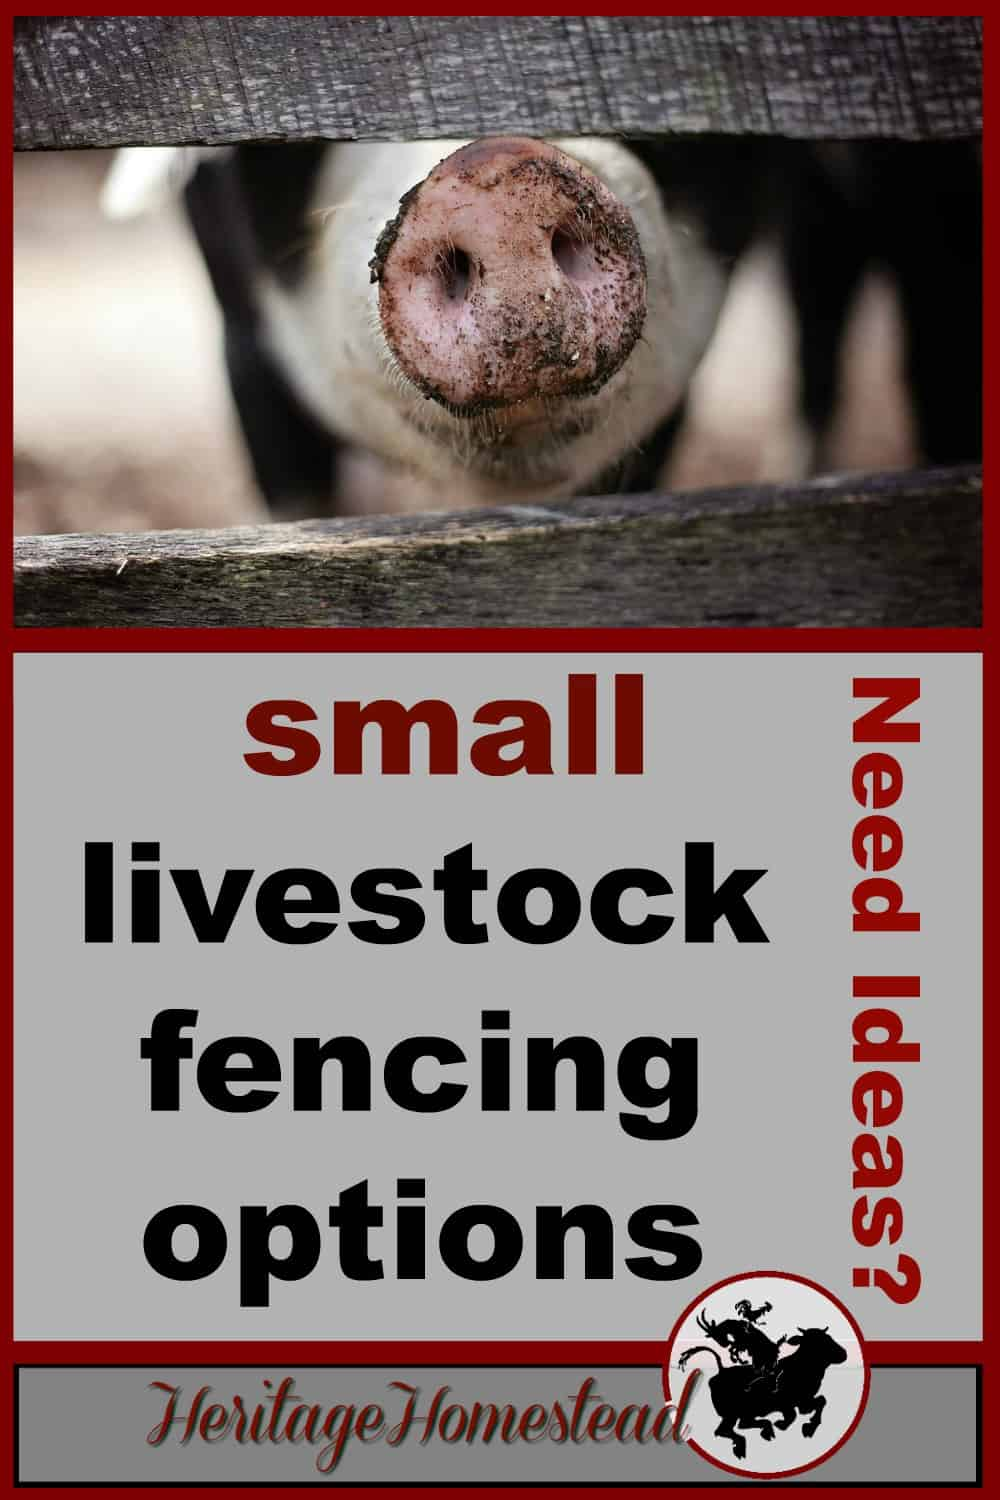 Fencing for Goats and Small Livestock - A Life Of Heritage